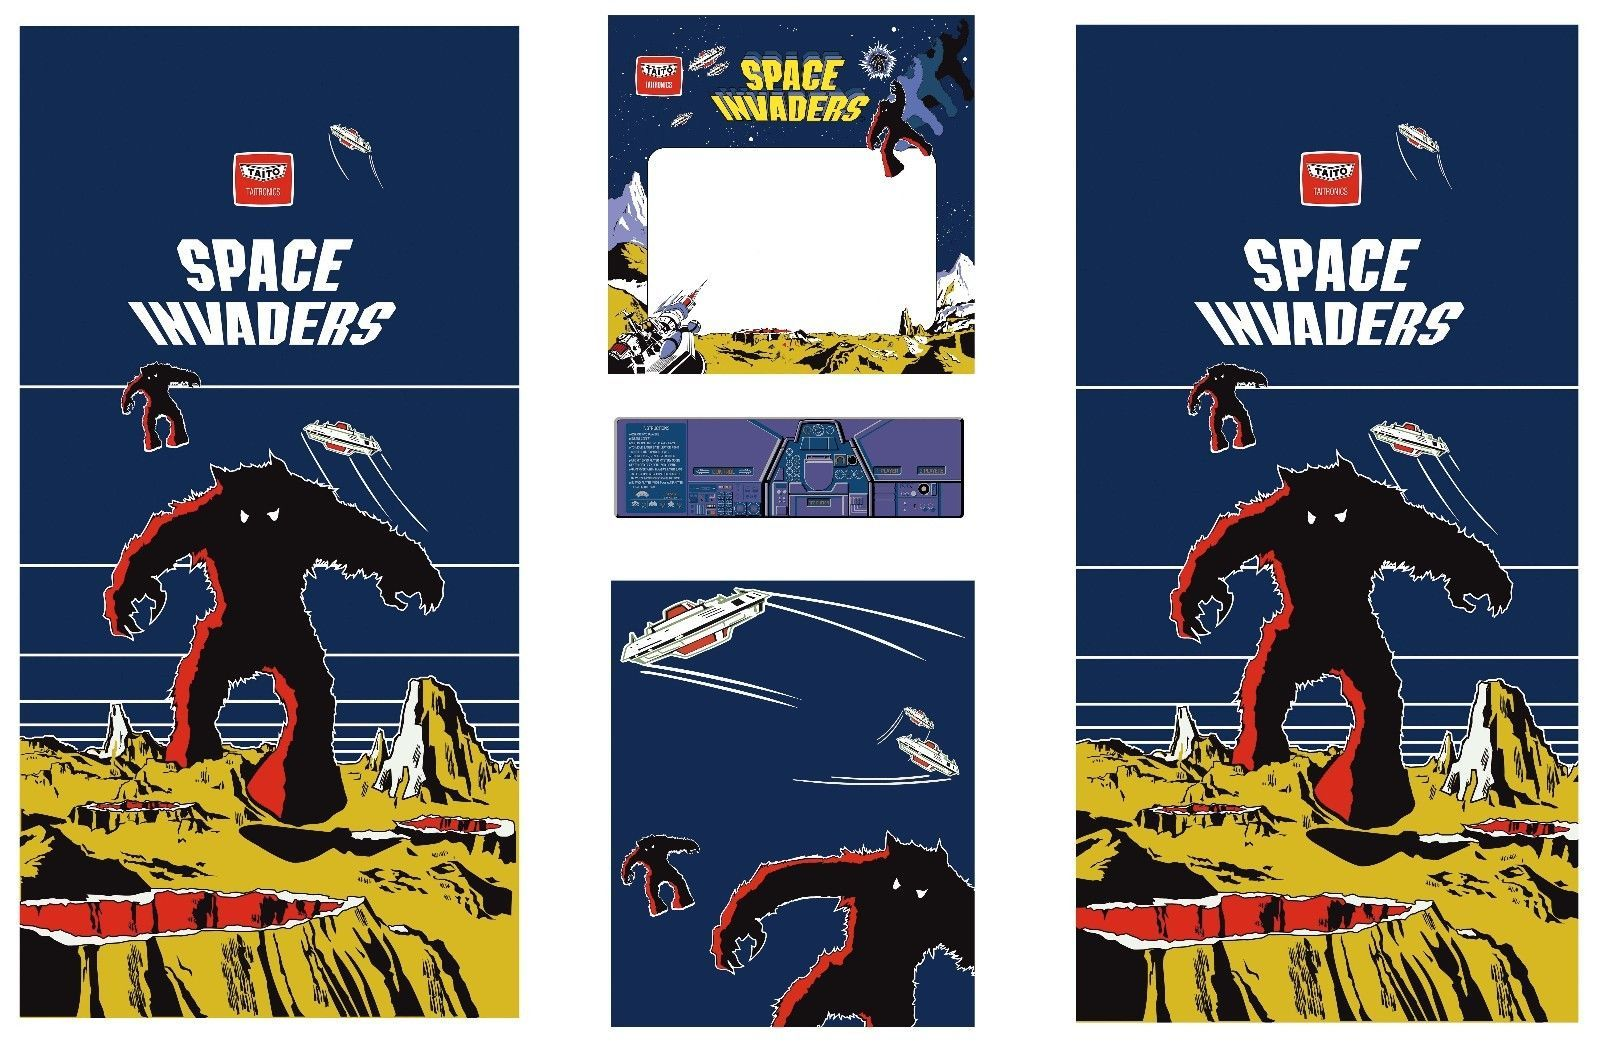 Full Set Side Art Arcade Cabinet Space Invaders Artwork Kit Arcade Cabinet Space Invaders Cabinet Space